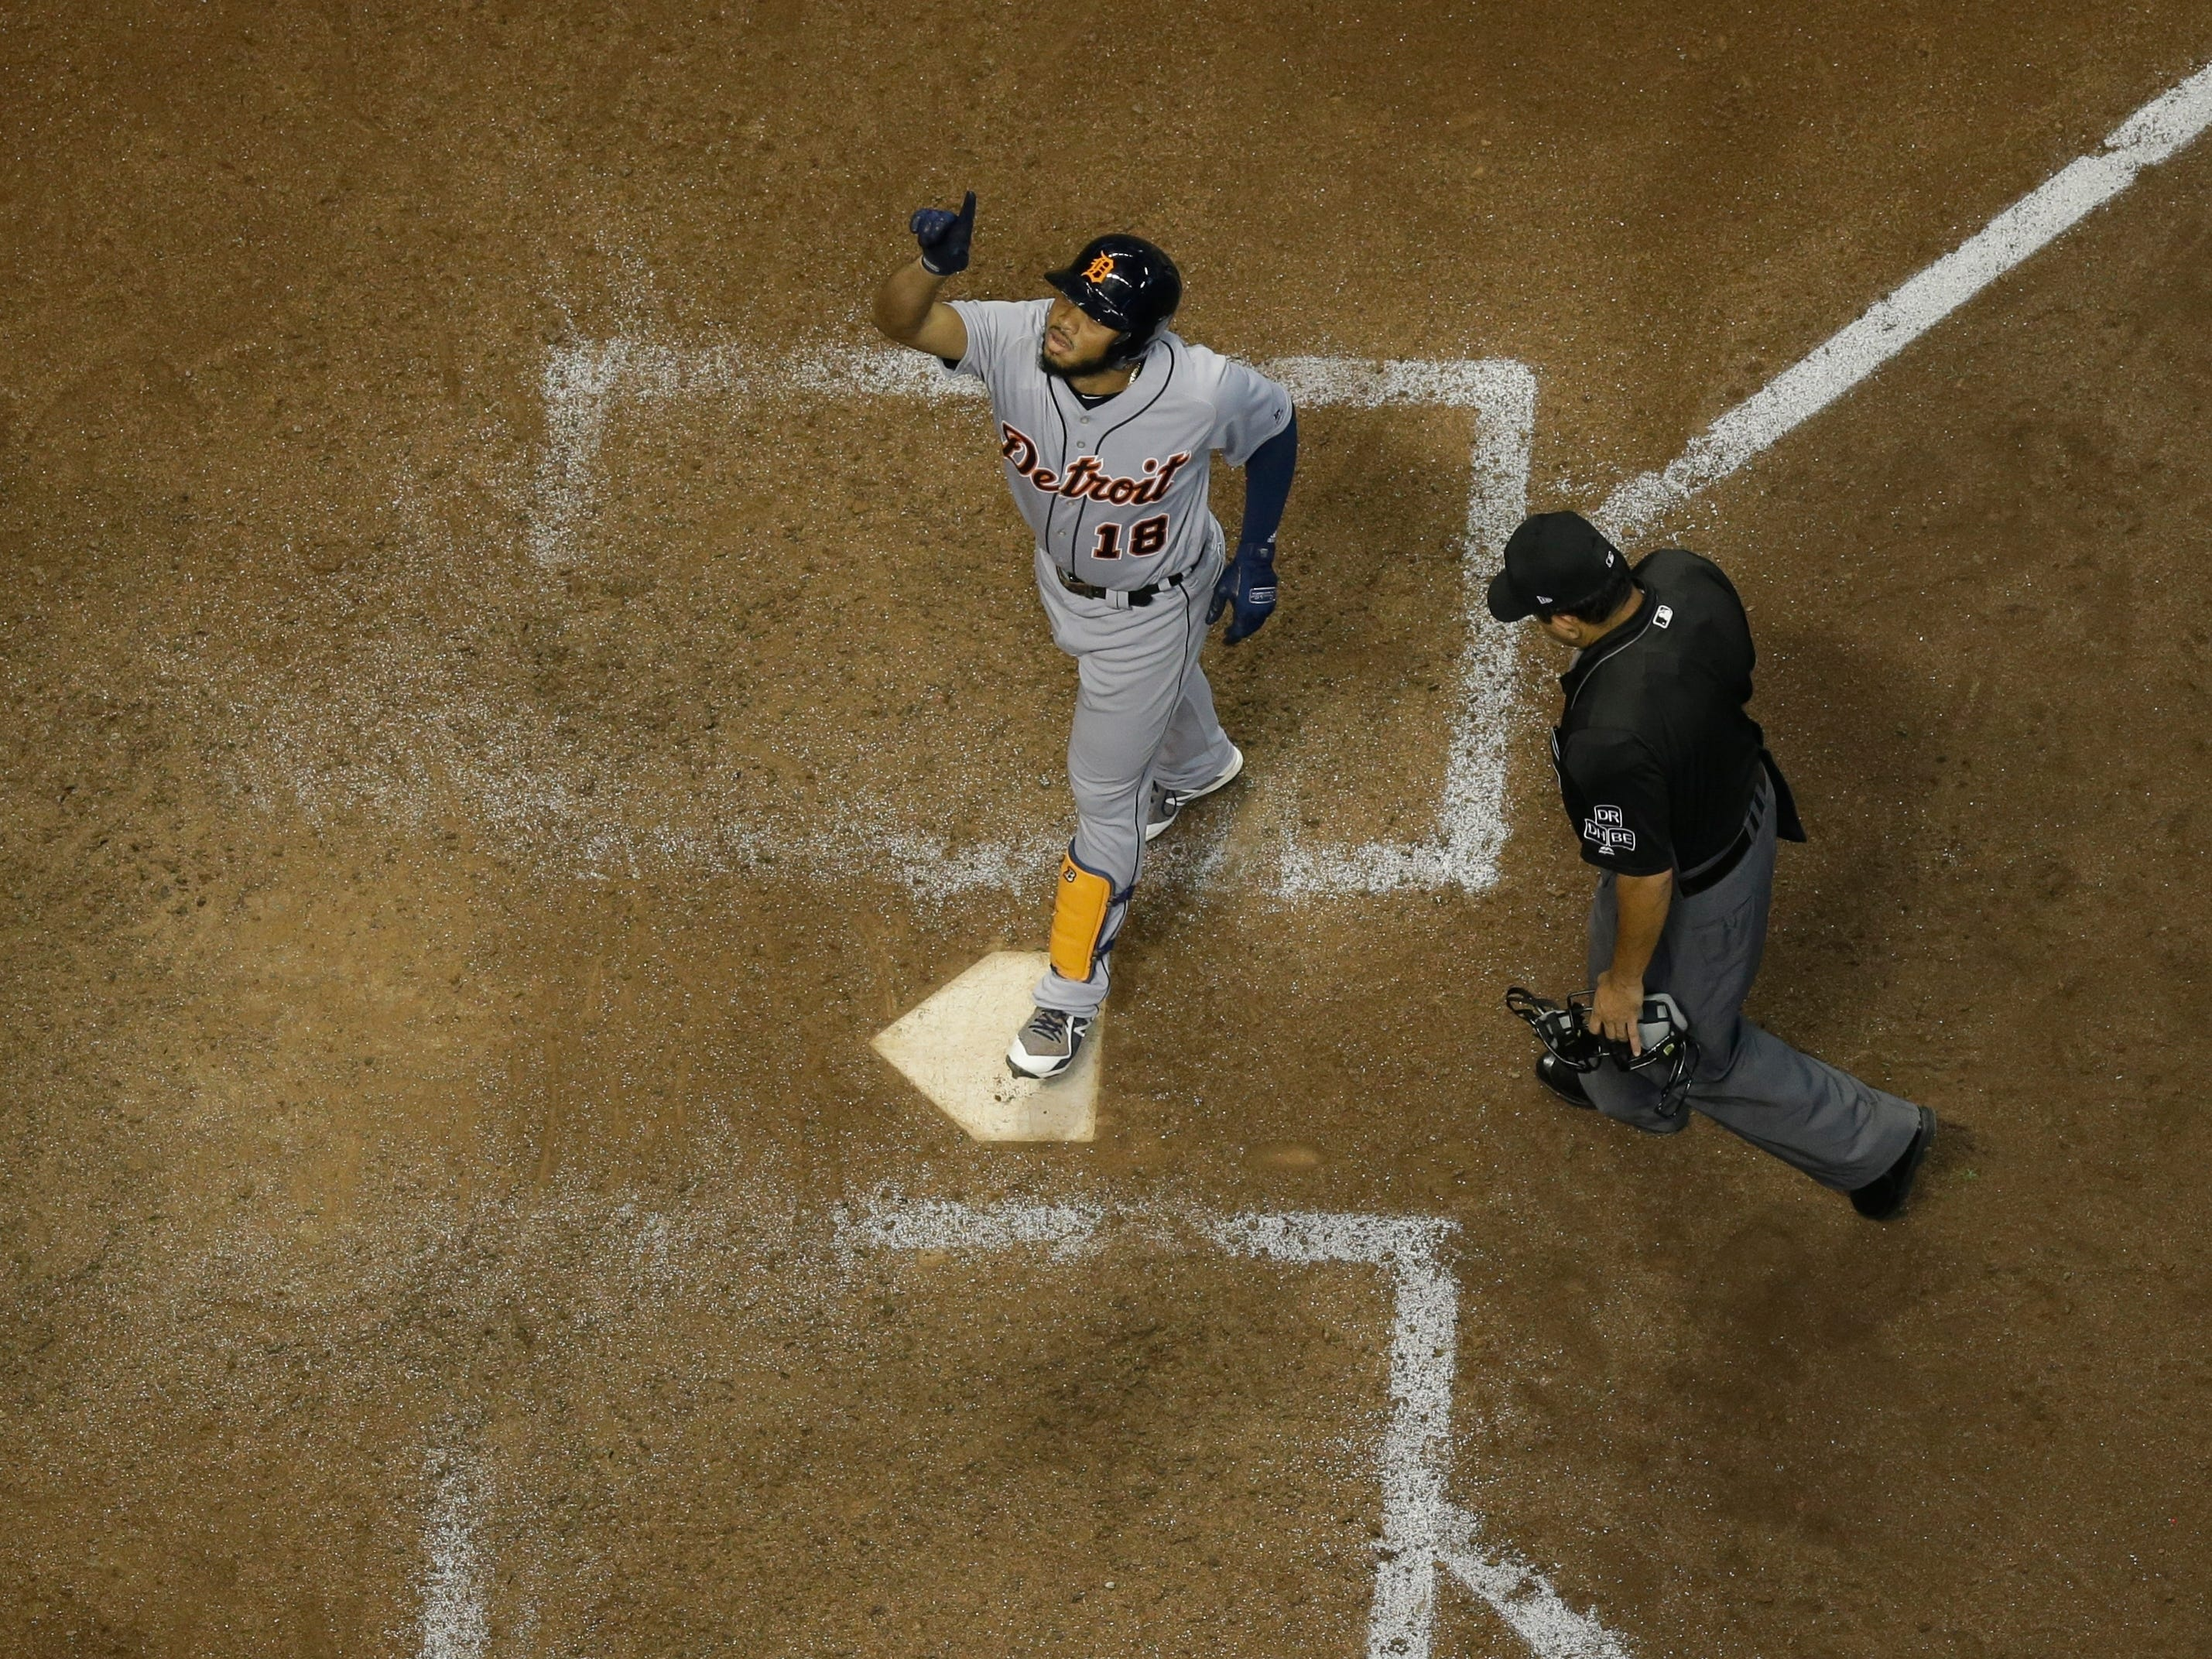 Detroit Tigers' Dawel Lugo after hitting a two-run home run during the eighth inning against the Milwaukee Brewers, Friday, Sept. 28, 2018, in Milwaukee.